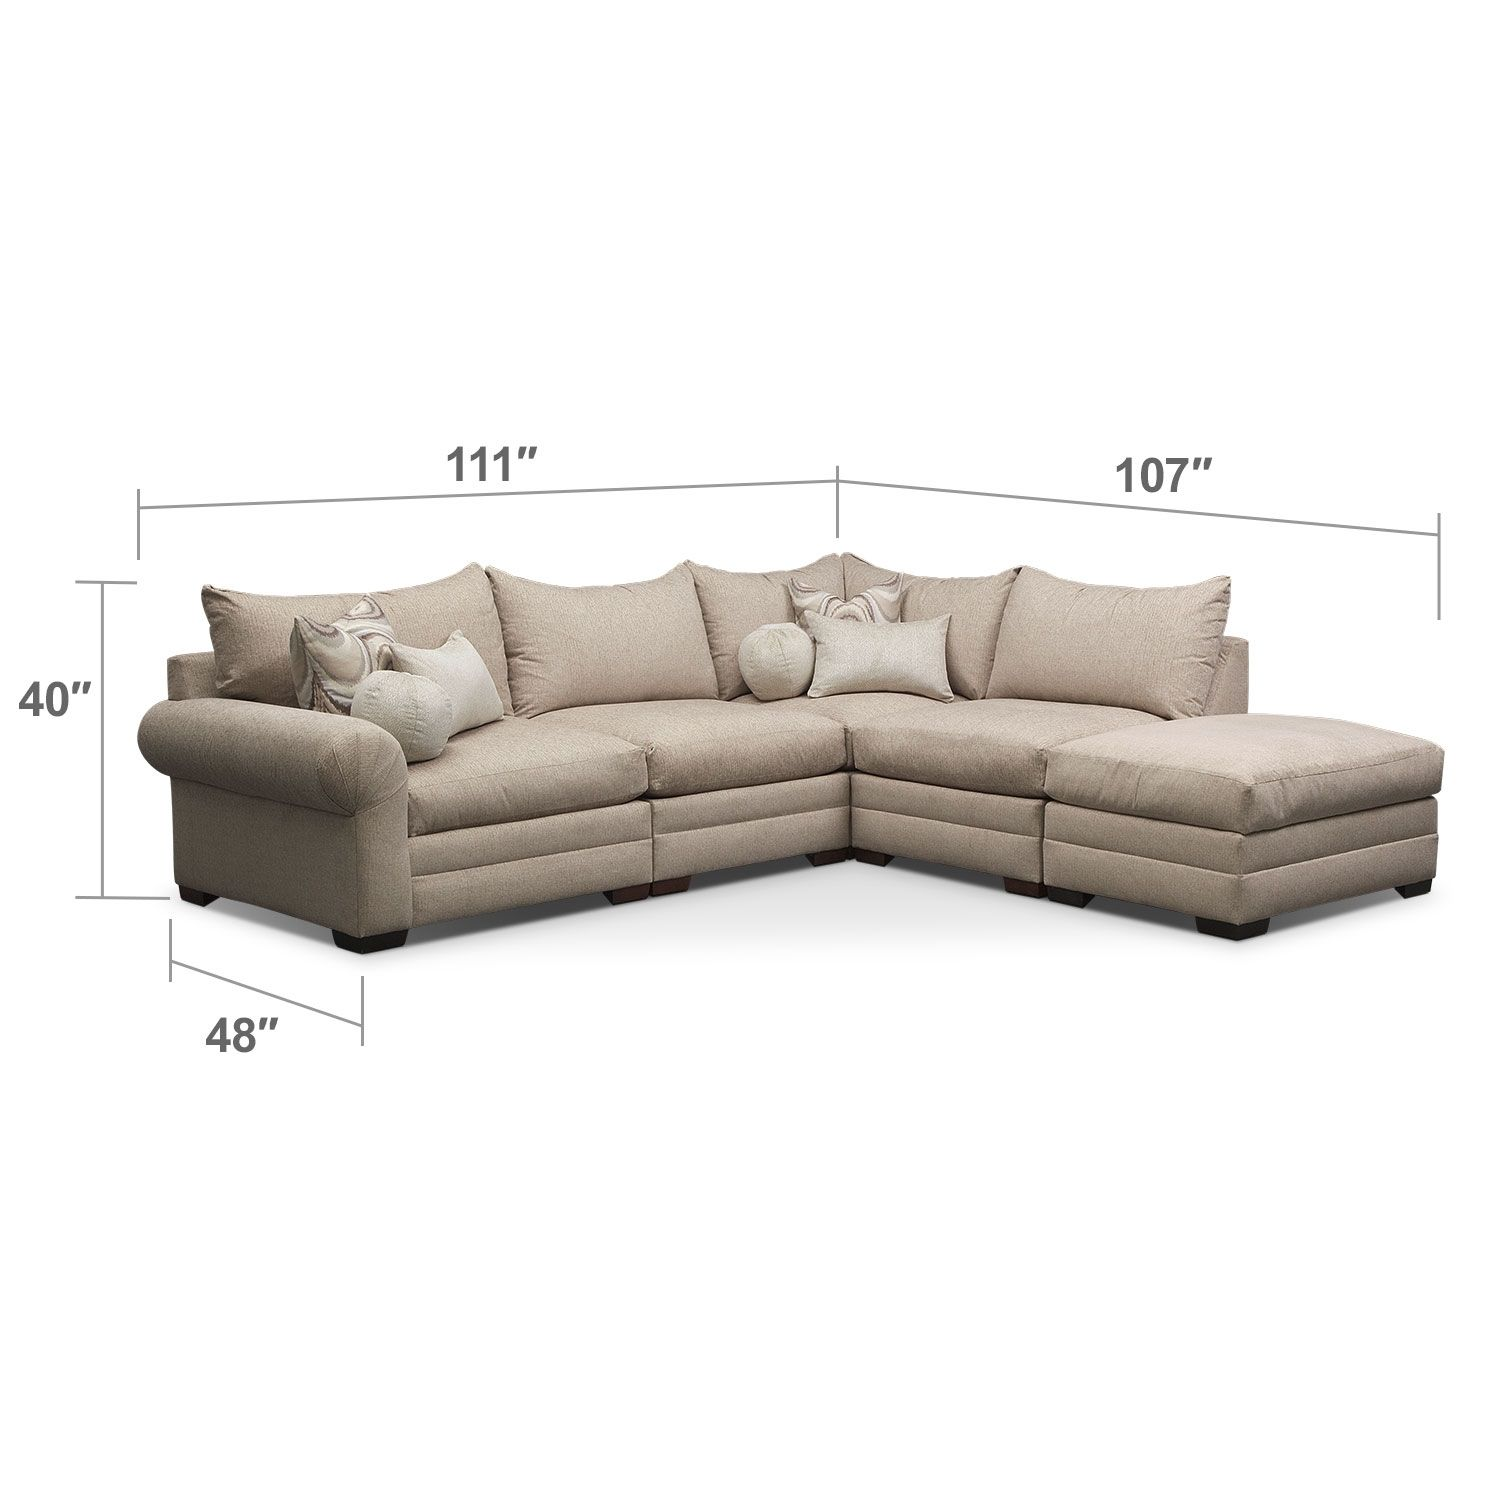 Wilshire 5 Pc Sectional Value City Furniture Furniture Sectional